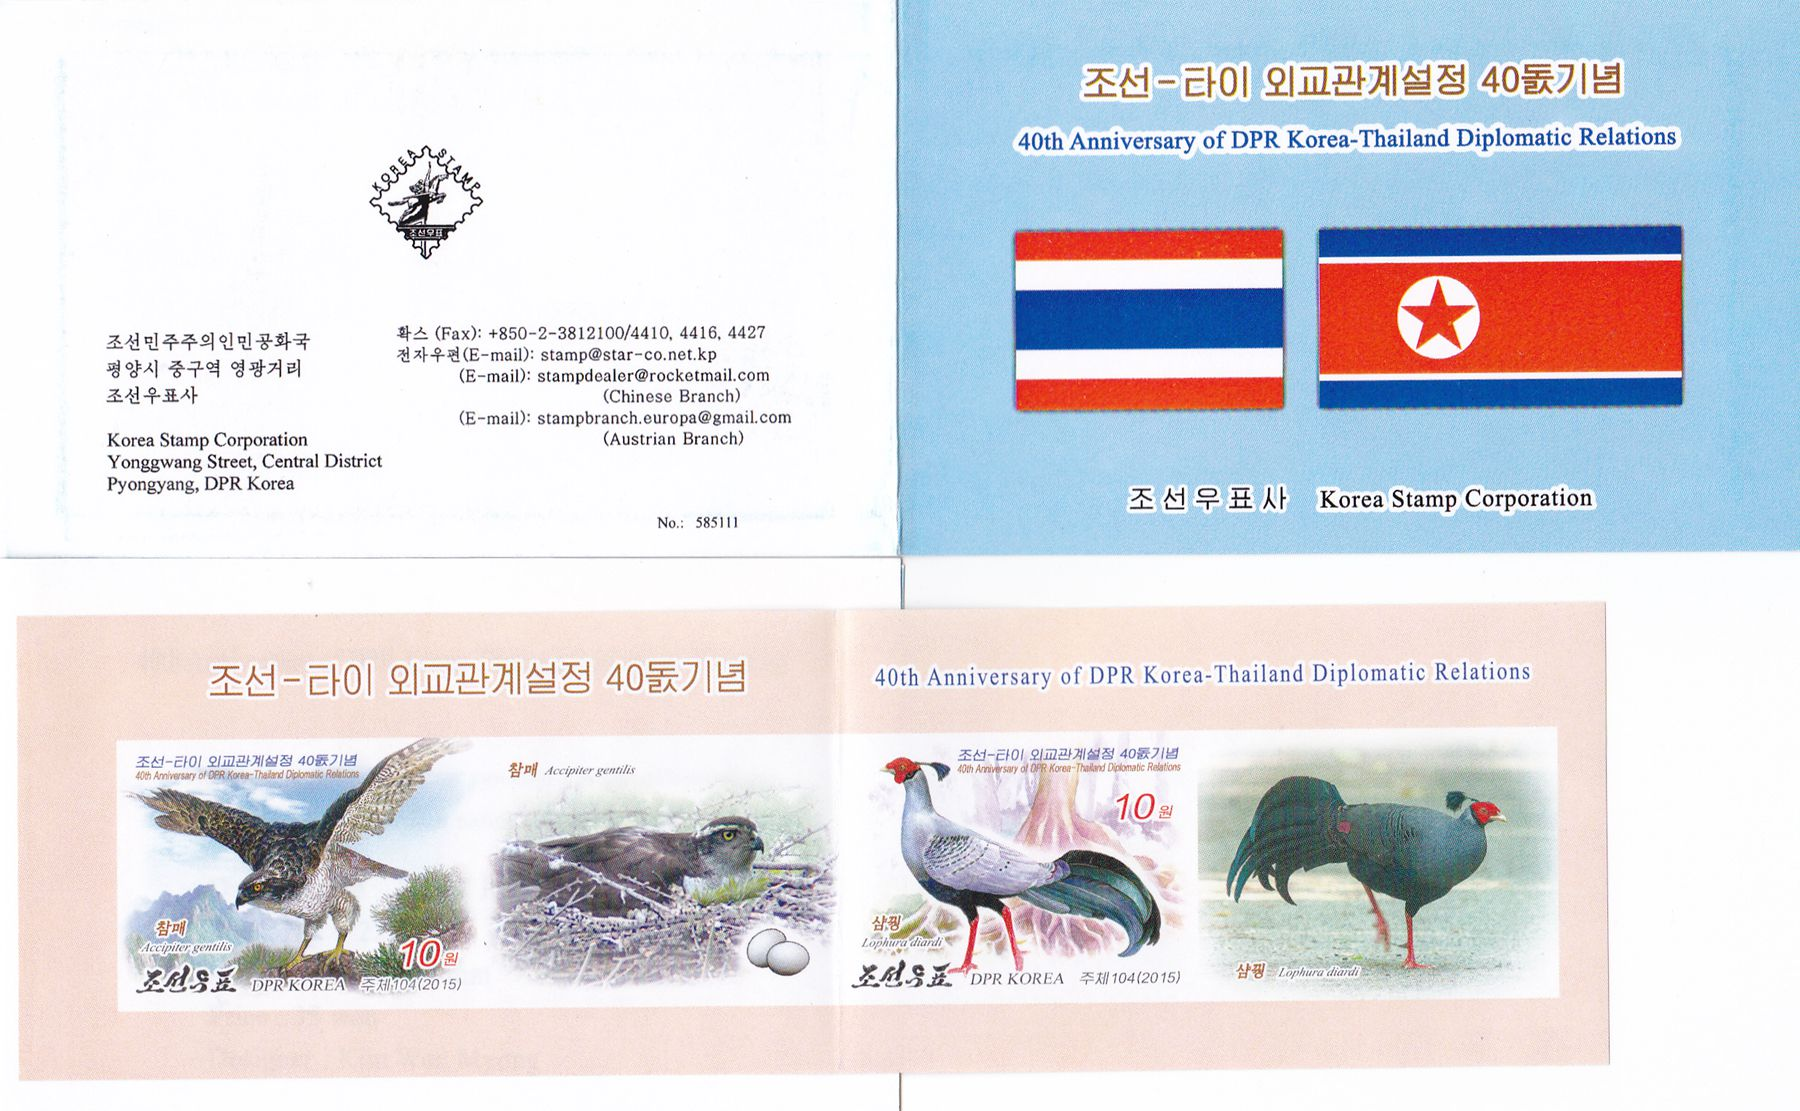 L9025, Korea-Thailand Diplomatic Relation Stamp Booklet, 2015 Imperforate